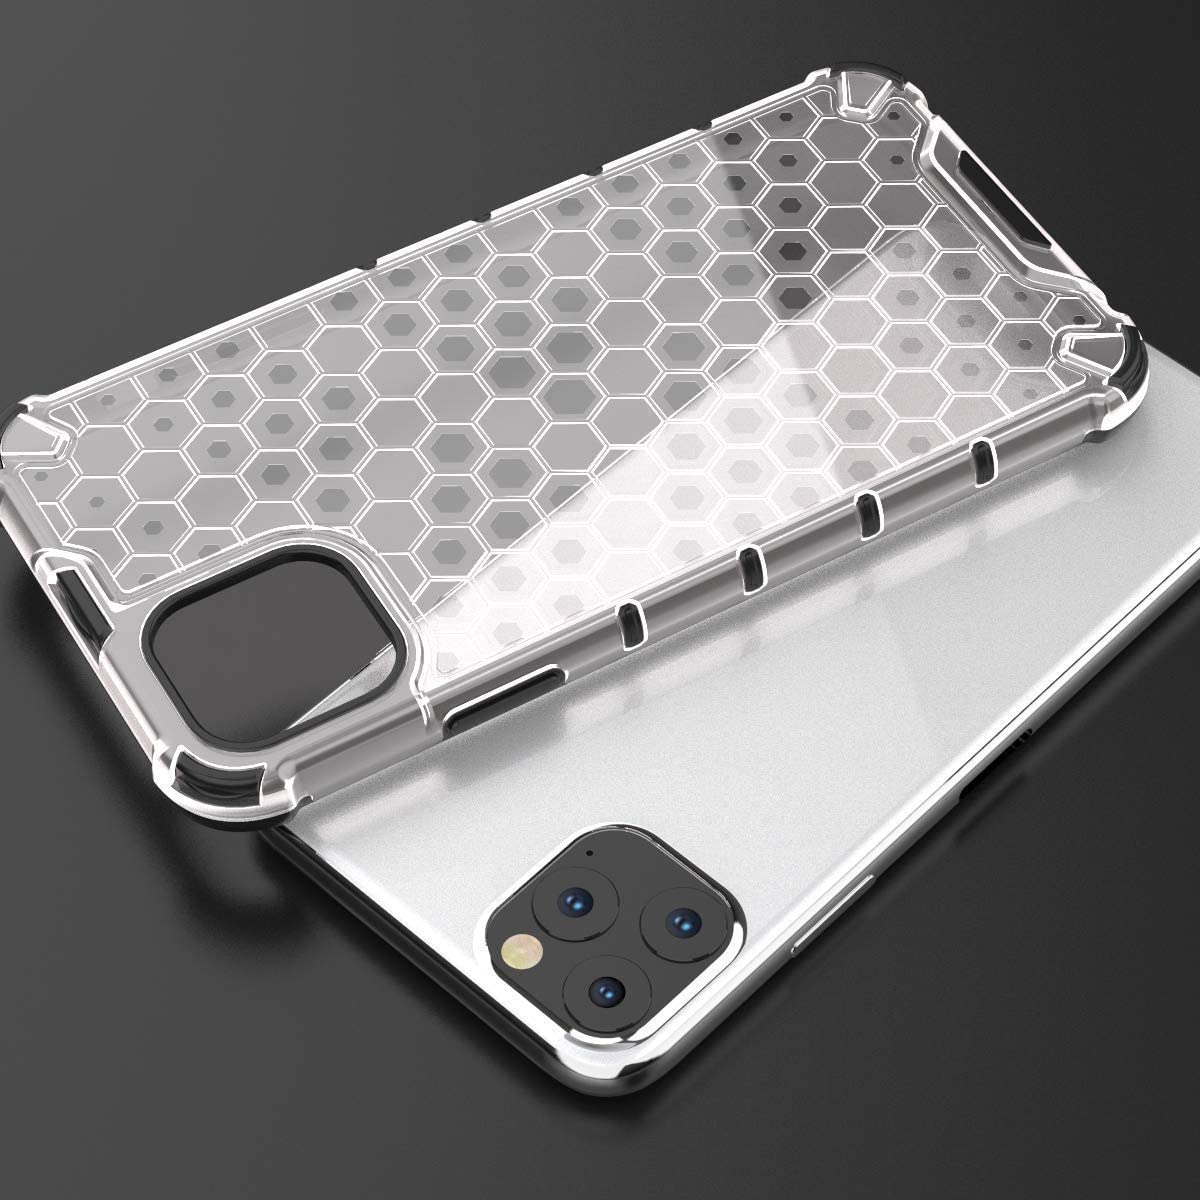 Pro /& Max Case Phone Cover TPU Fashion Hexagon Design 2-IN-1 Scratch Resistant Anti Slip Shockproof Protective Translucent Cover Multi-Colour HoneyComb iPhone 11